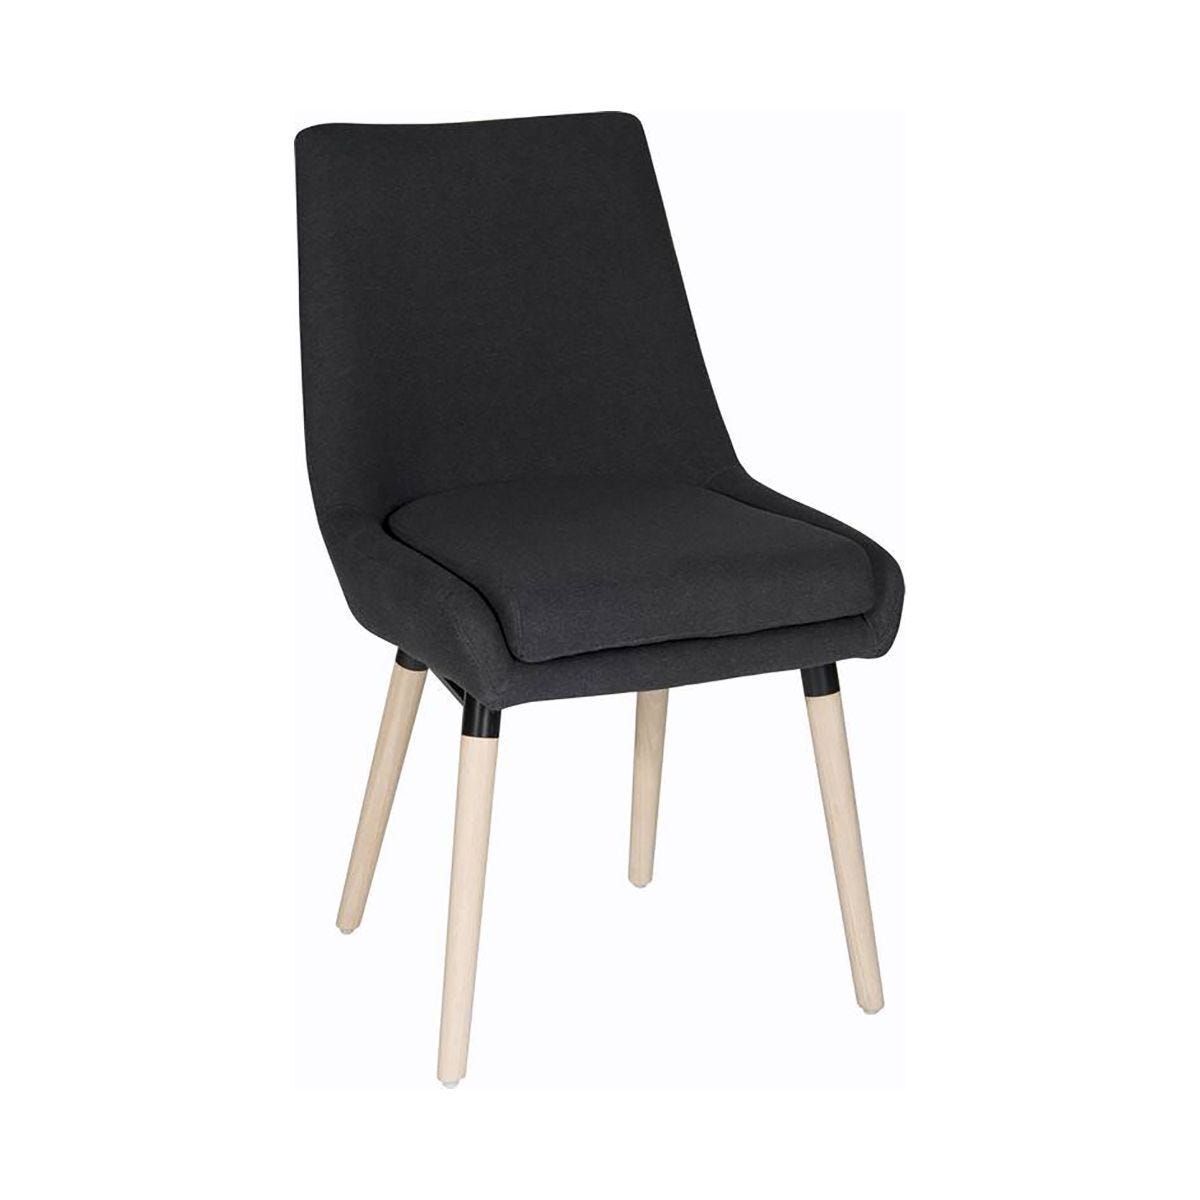 Teknik Office Welcome Breakout Reception Chair Pack of 2 Graphite